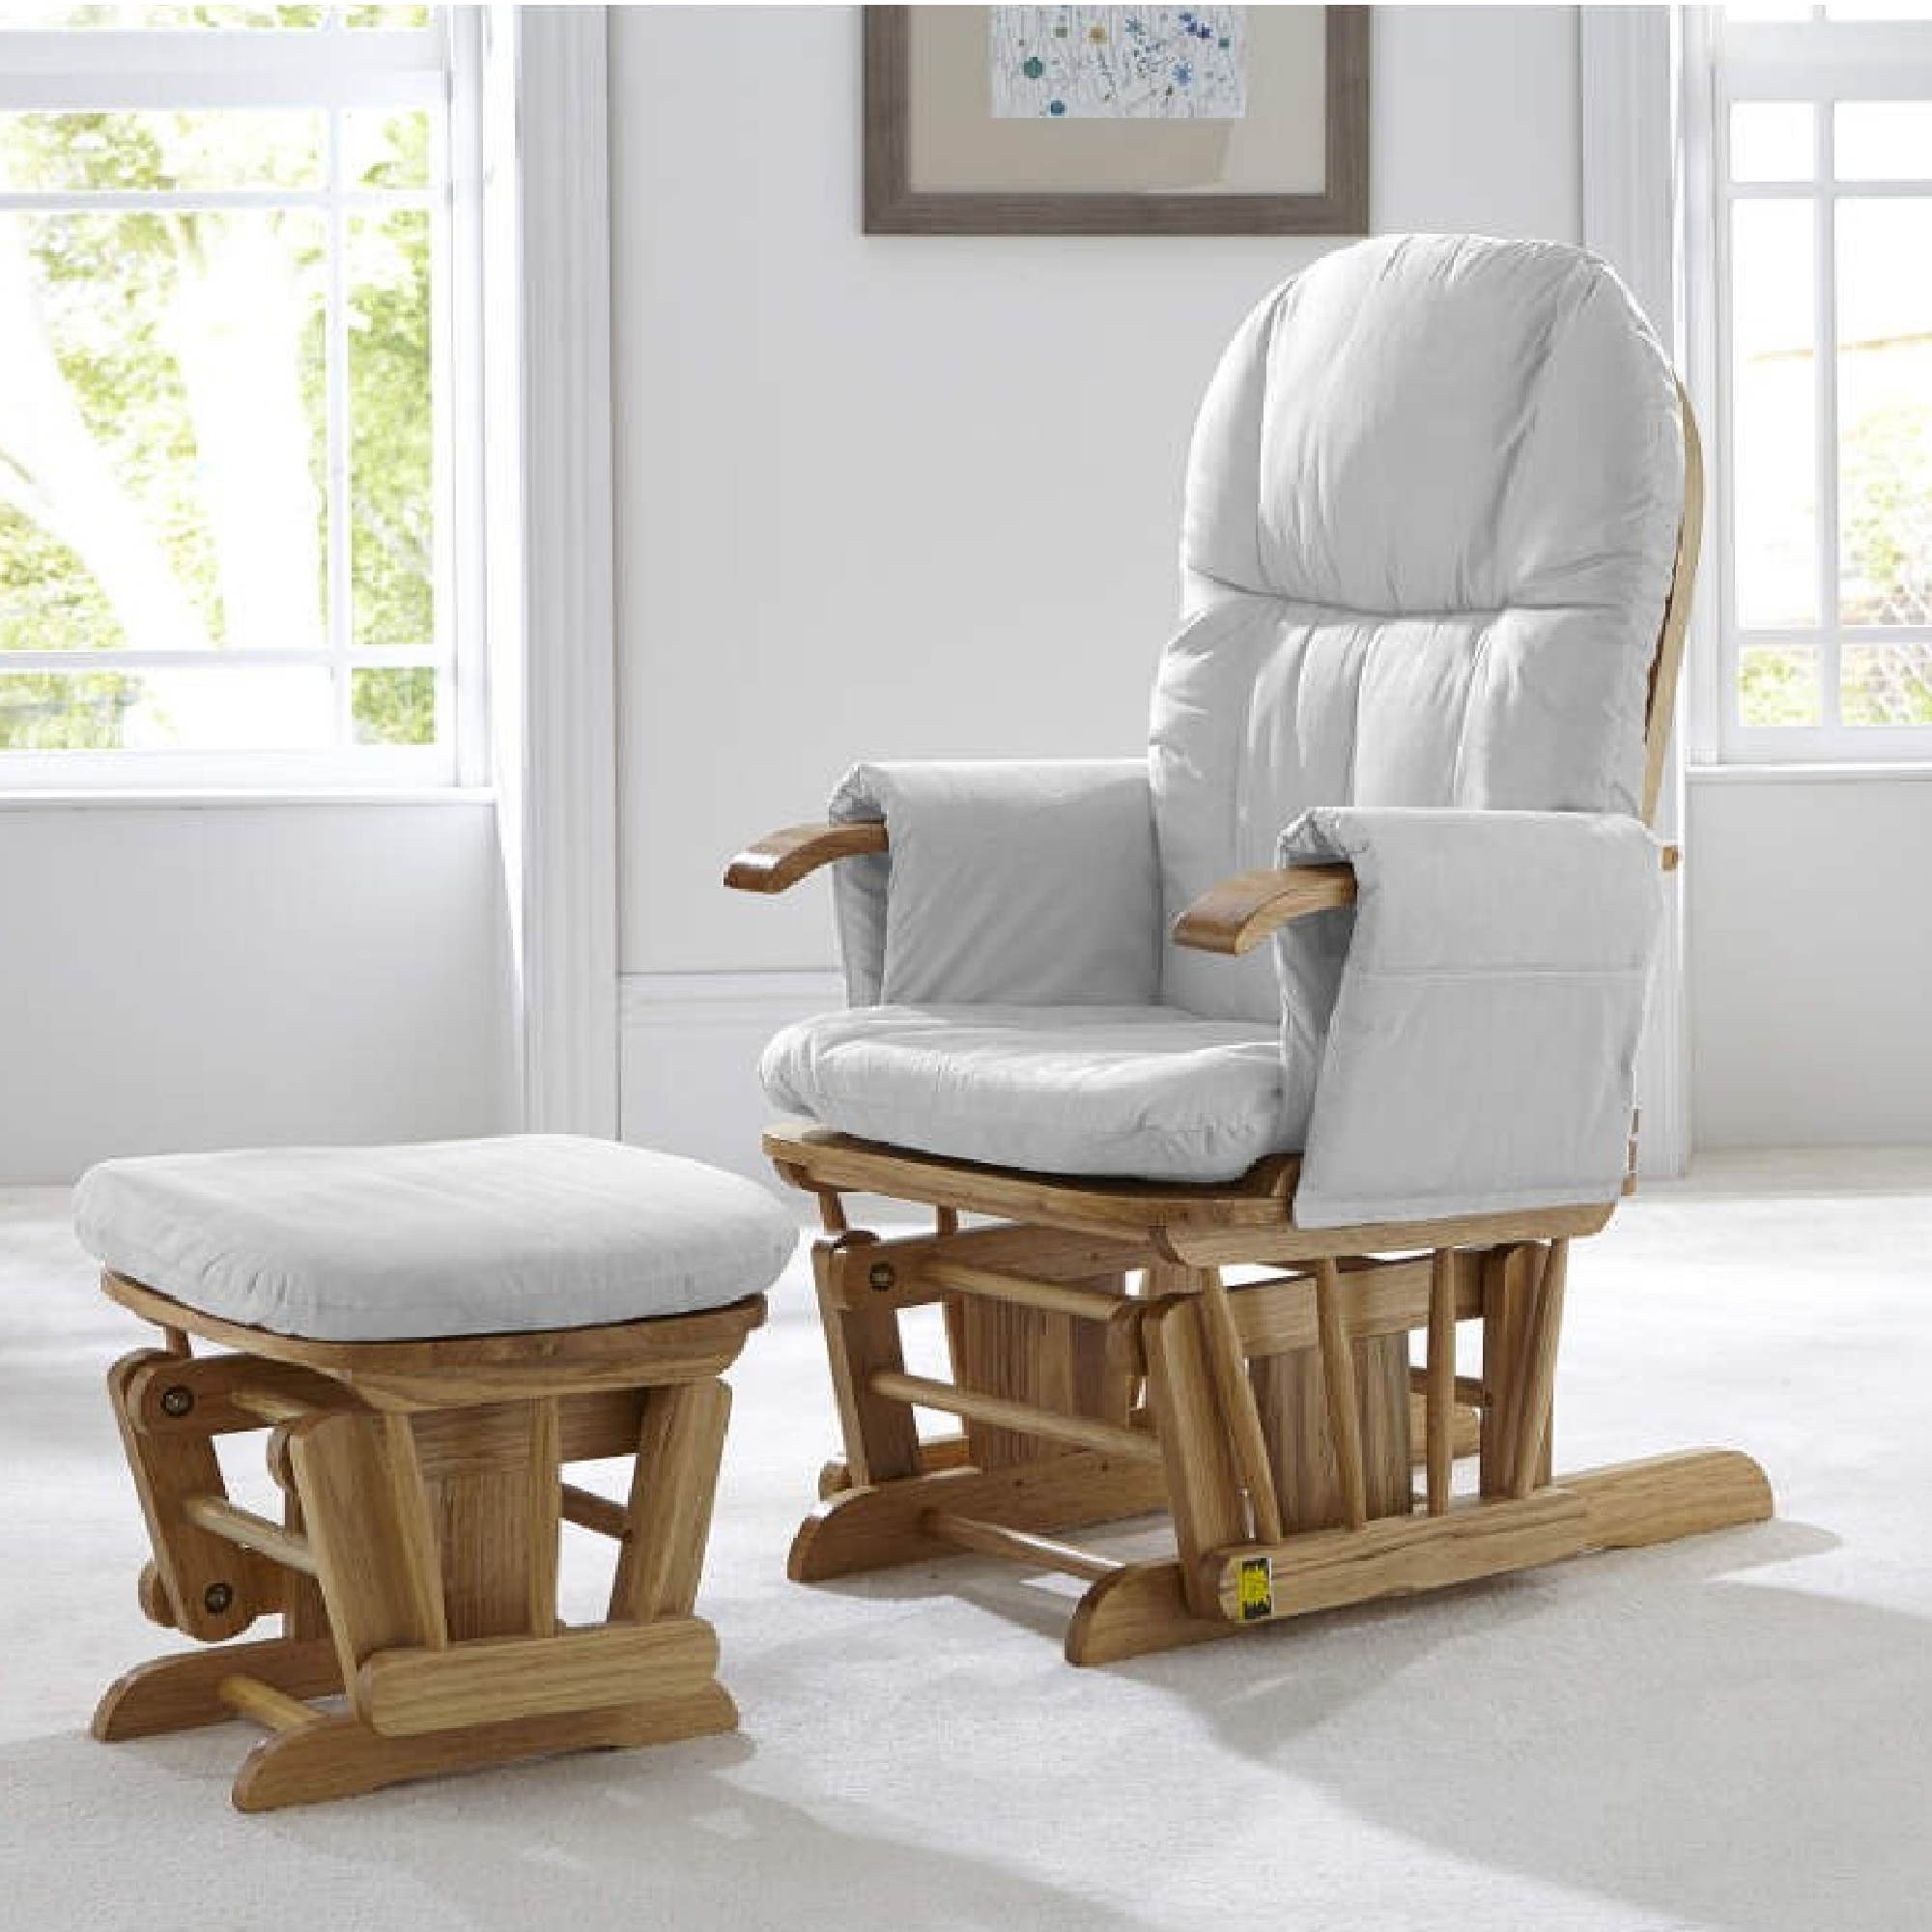 Astonishing Tutti Bambini Reclining Glider Chair Stool Natural With Grey Cushions Pabps2019 Chair Design Images Pabps2019Com